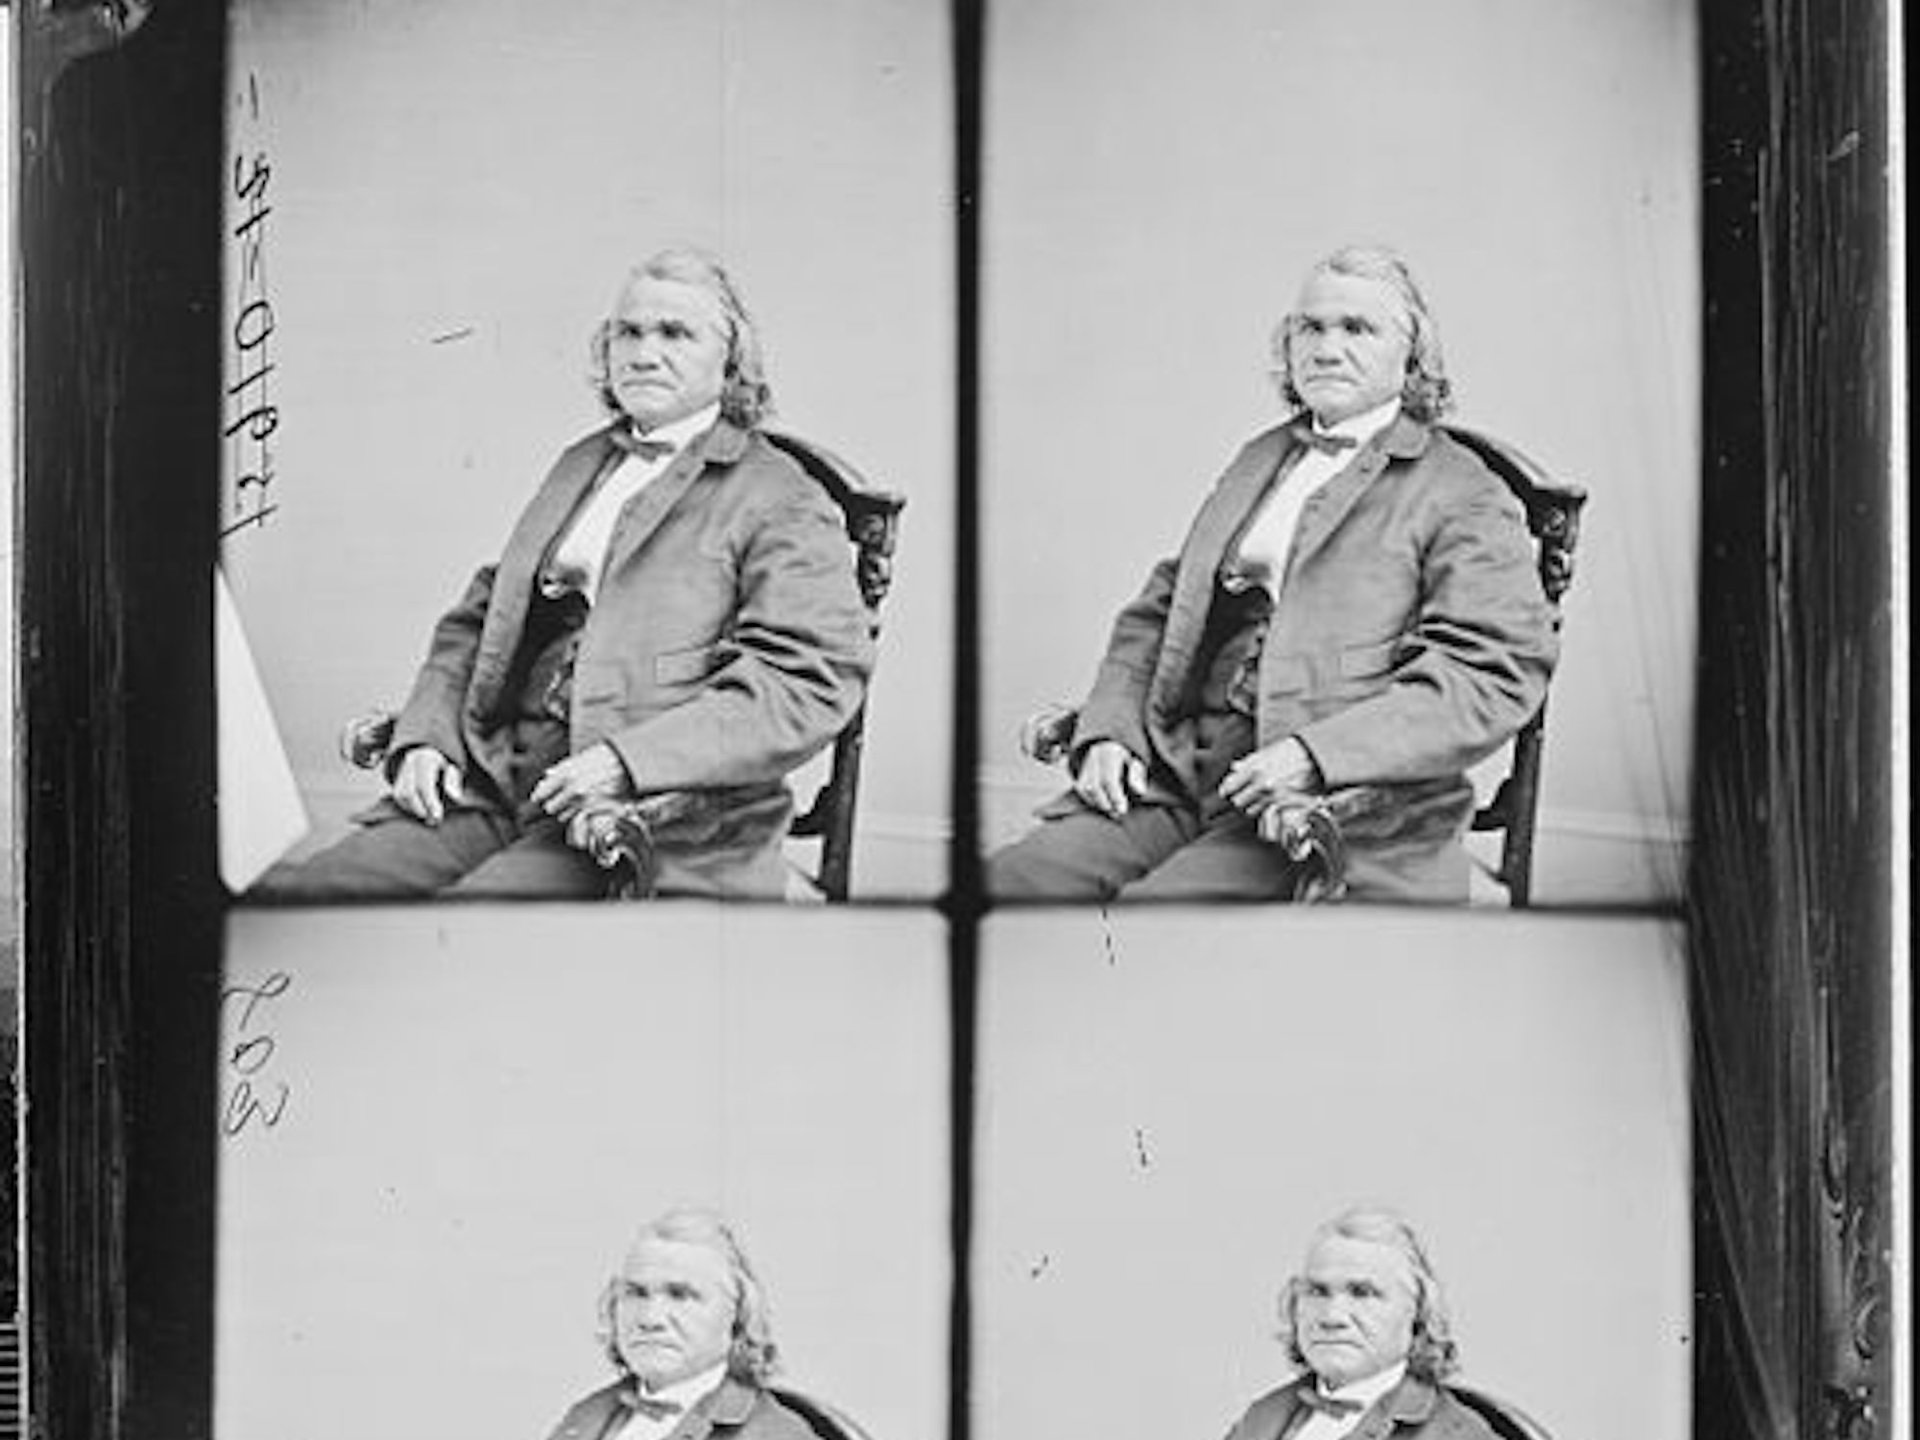 lutheran indian ministries native news - This 1858 photograph shows General Stand Watie, leader of a Native American army which fought for the Confederacy in the Civil War National Archives Catalogue